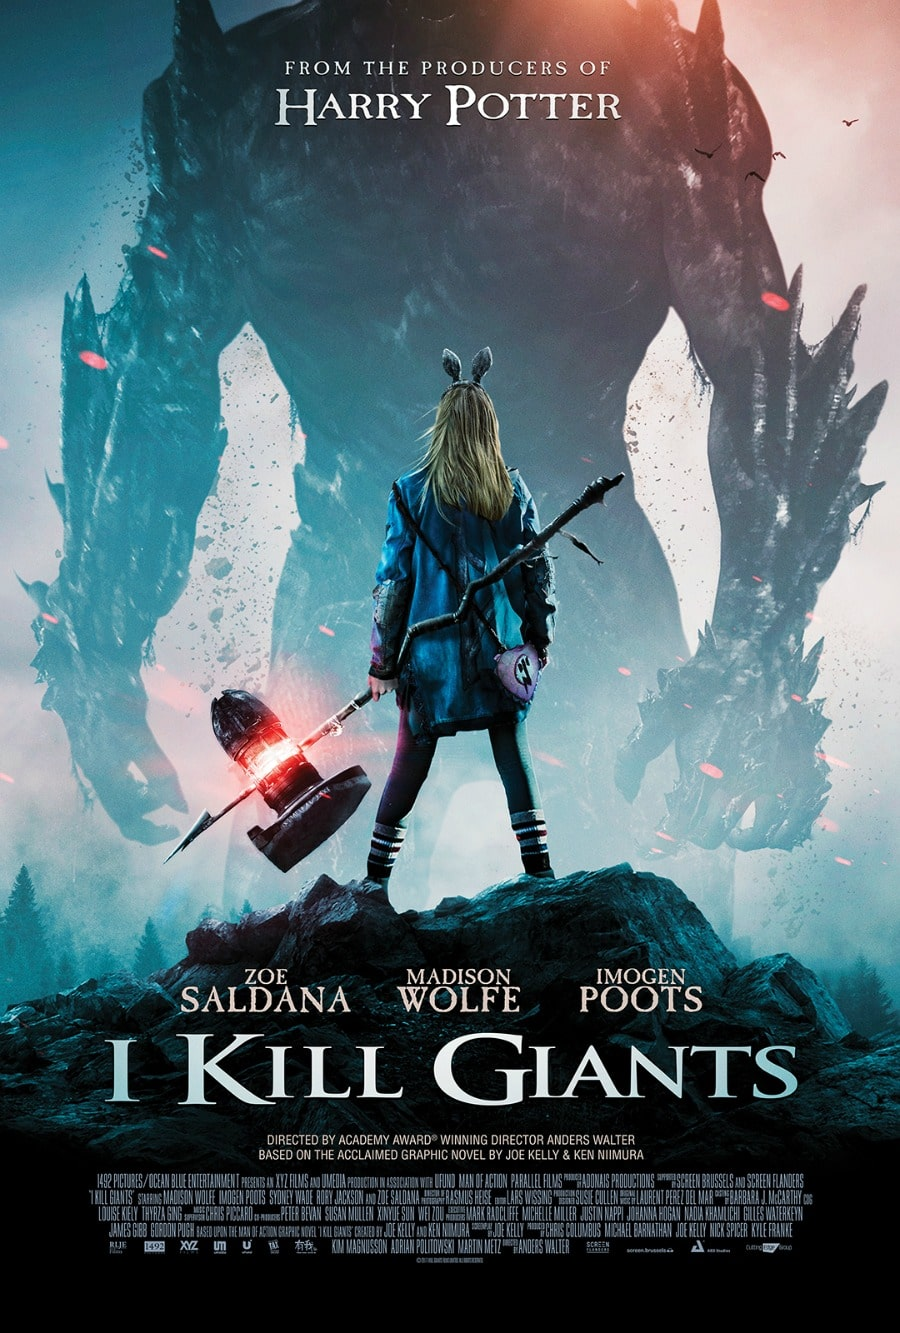 I Kill Giants Encourages and Inspires Girls to Not Be Afraid